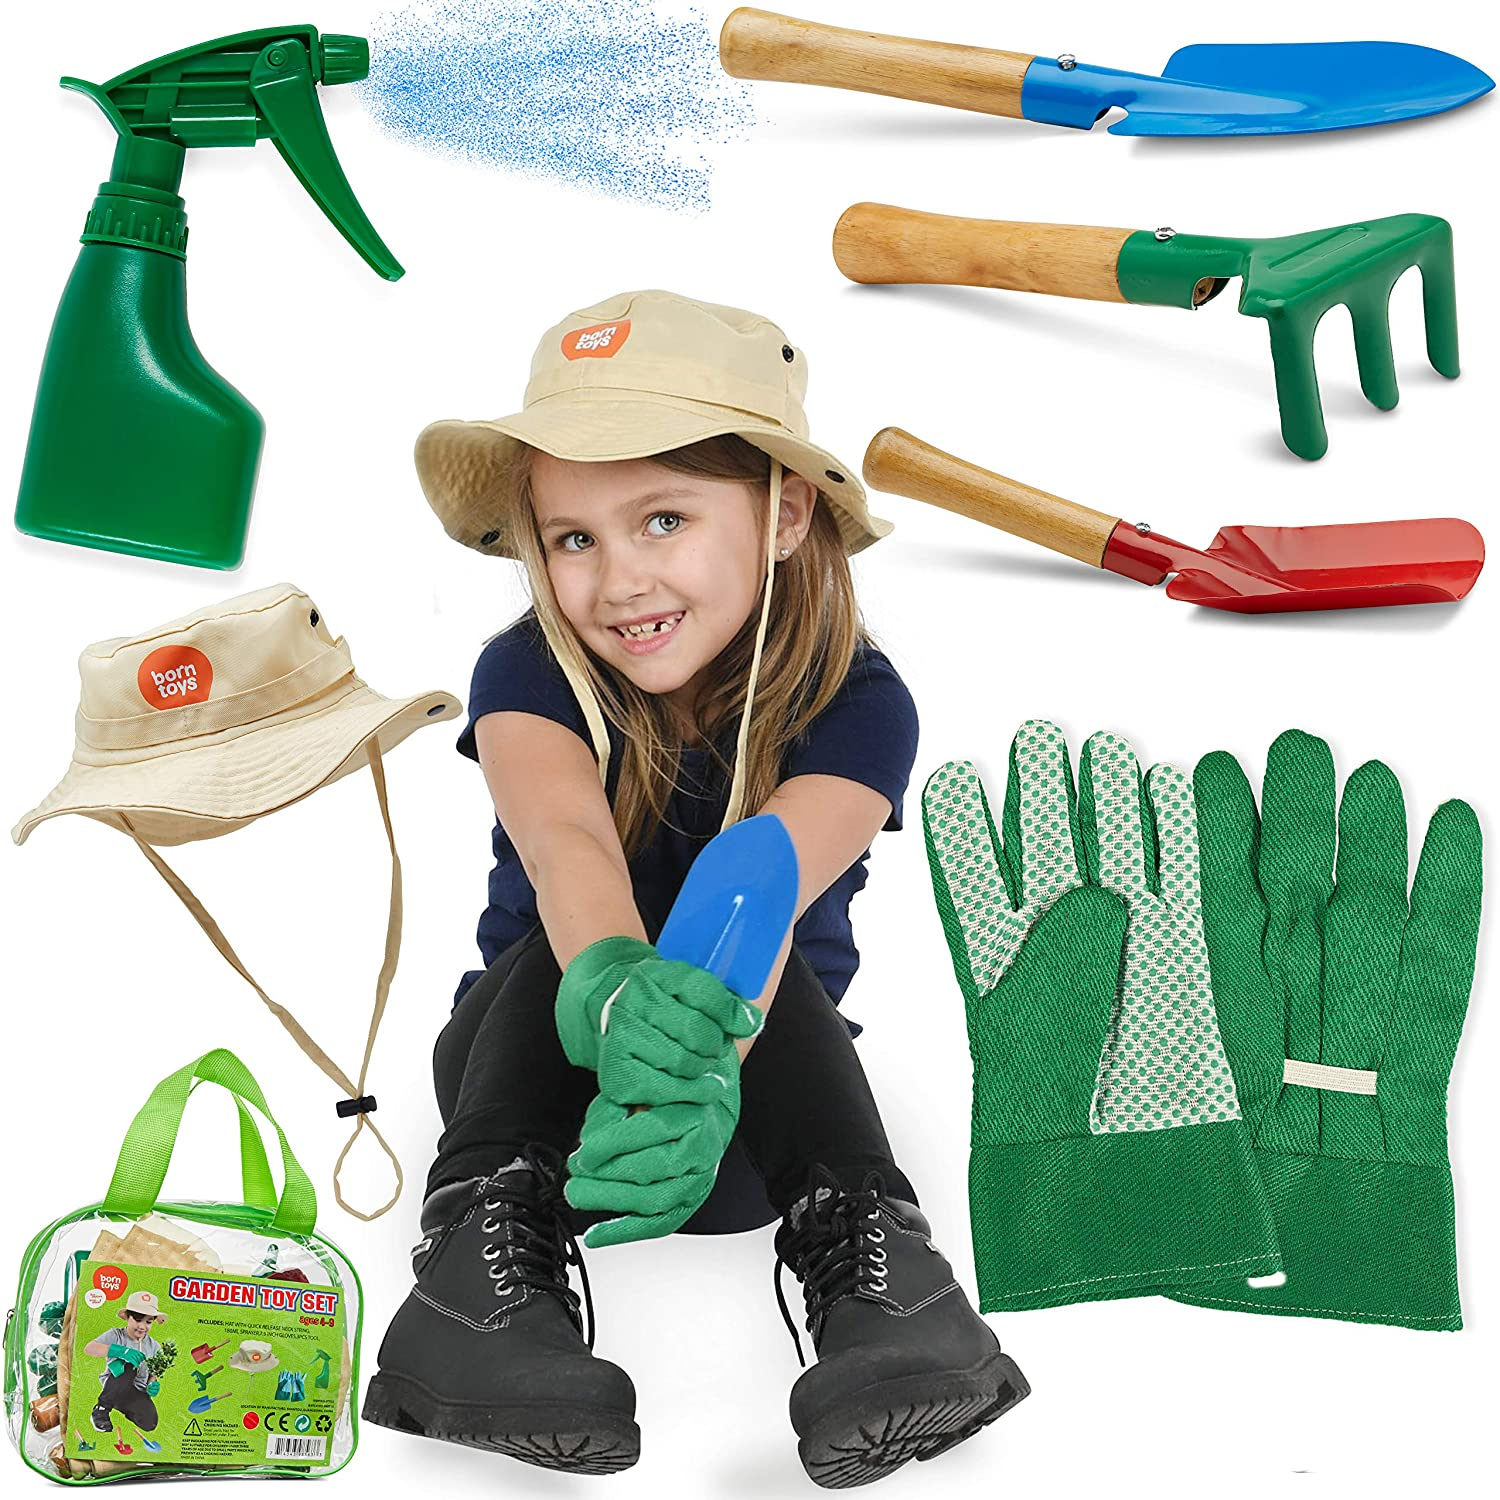 Born Toys Kids Gardening Set (6 pc),Garden Rake and Tools with Kids Gardening Gloves and Washable HAT Set for Real or Sand Gardening Water Sprayer Bag Included